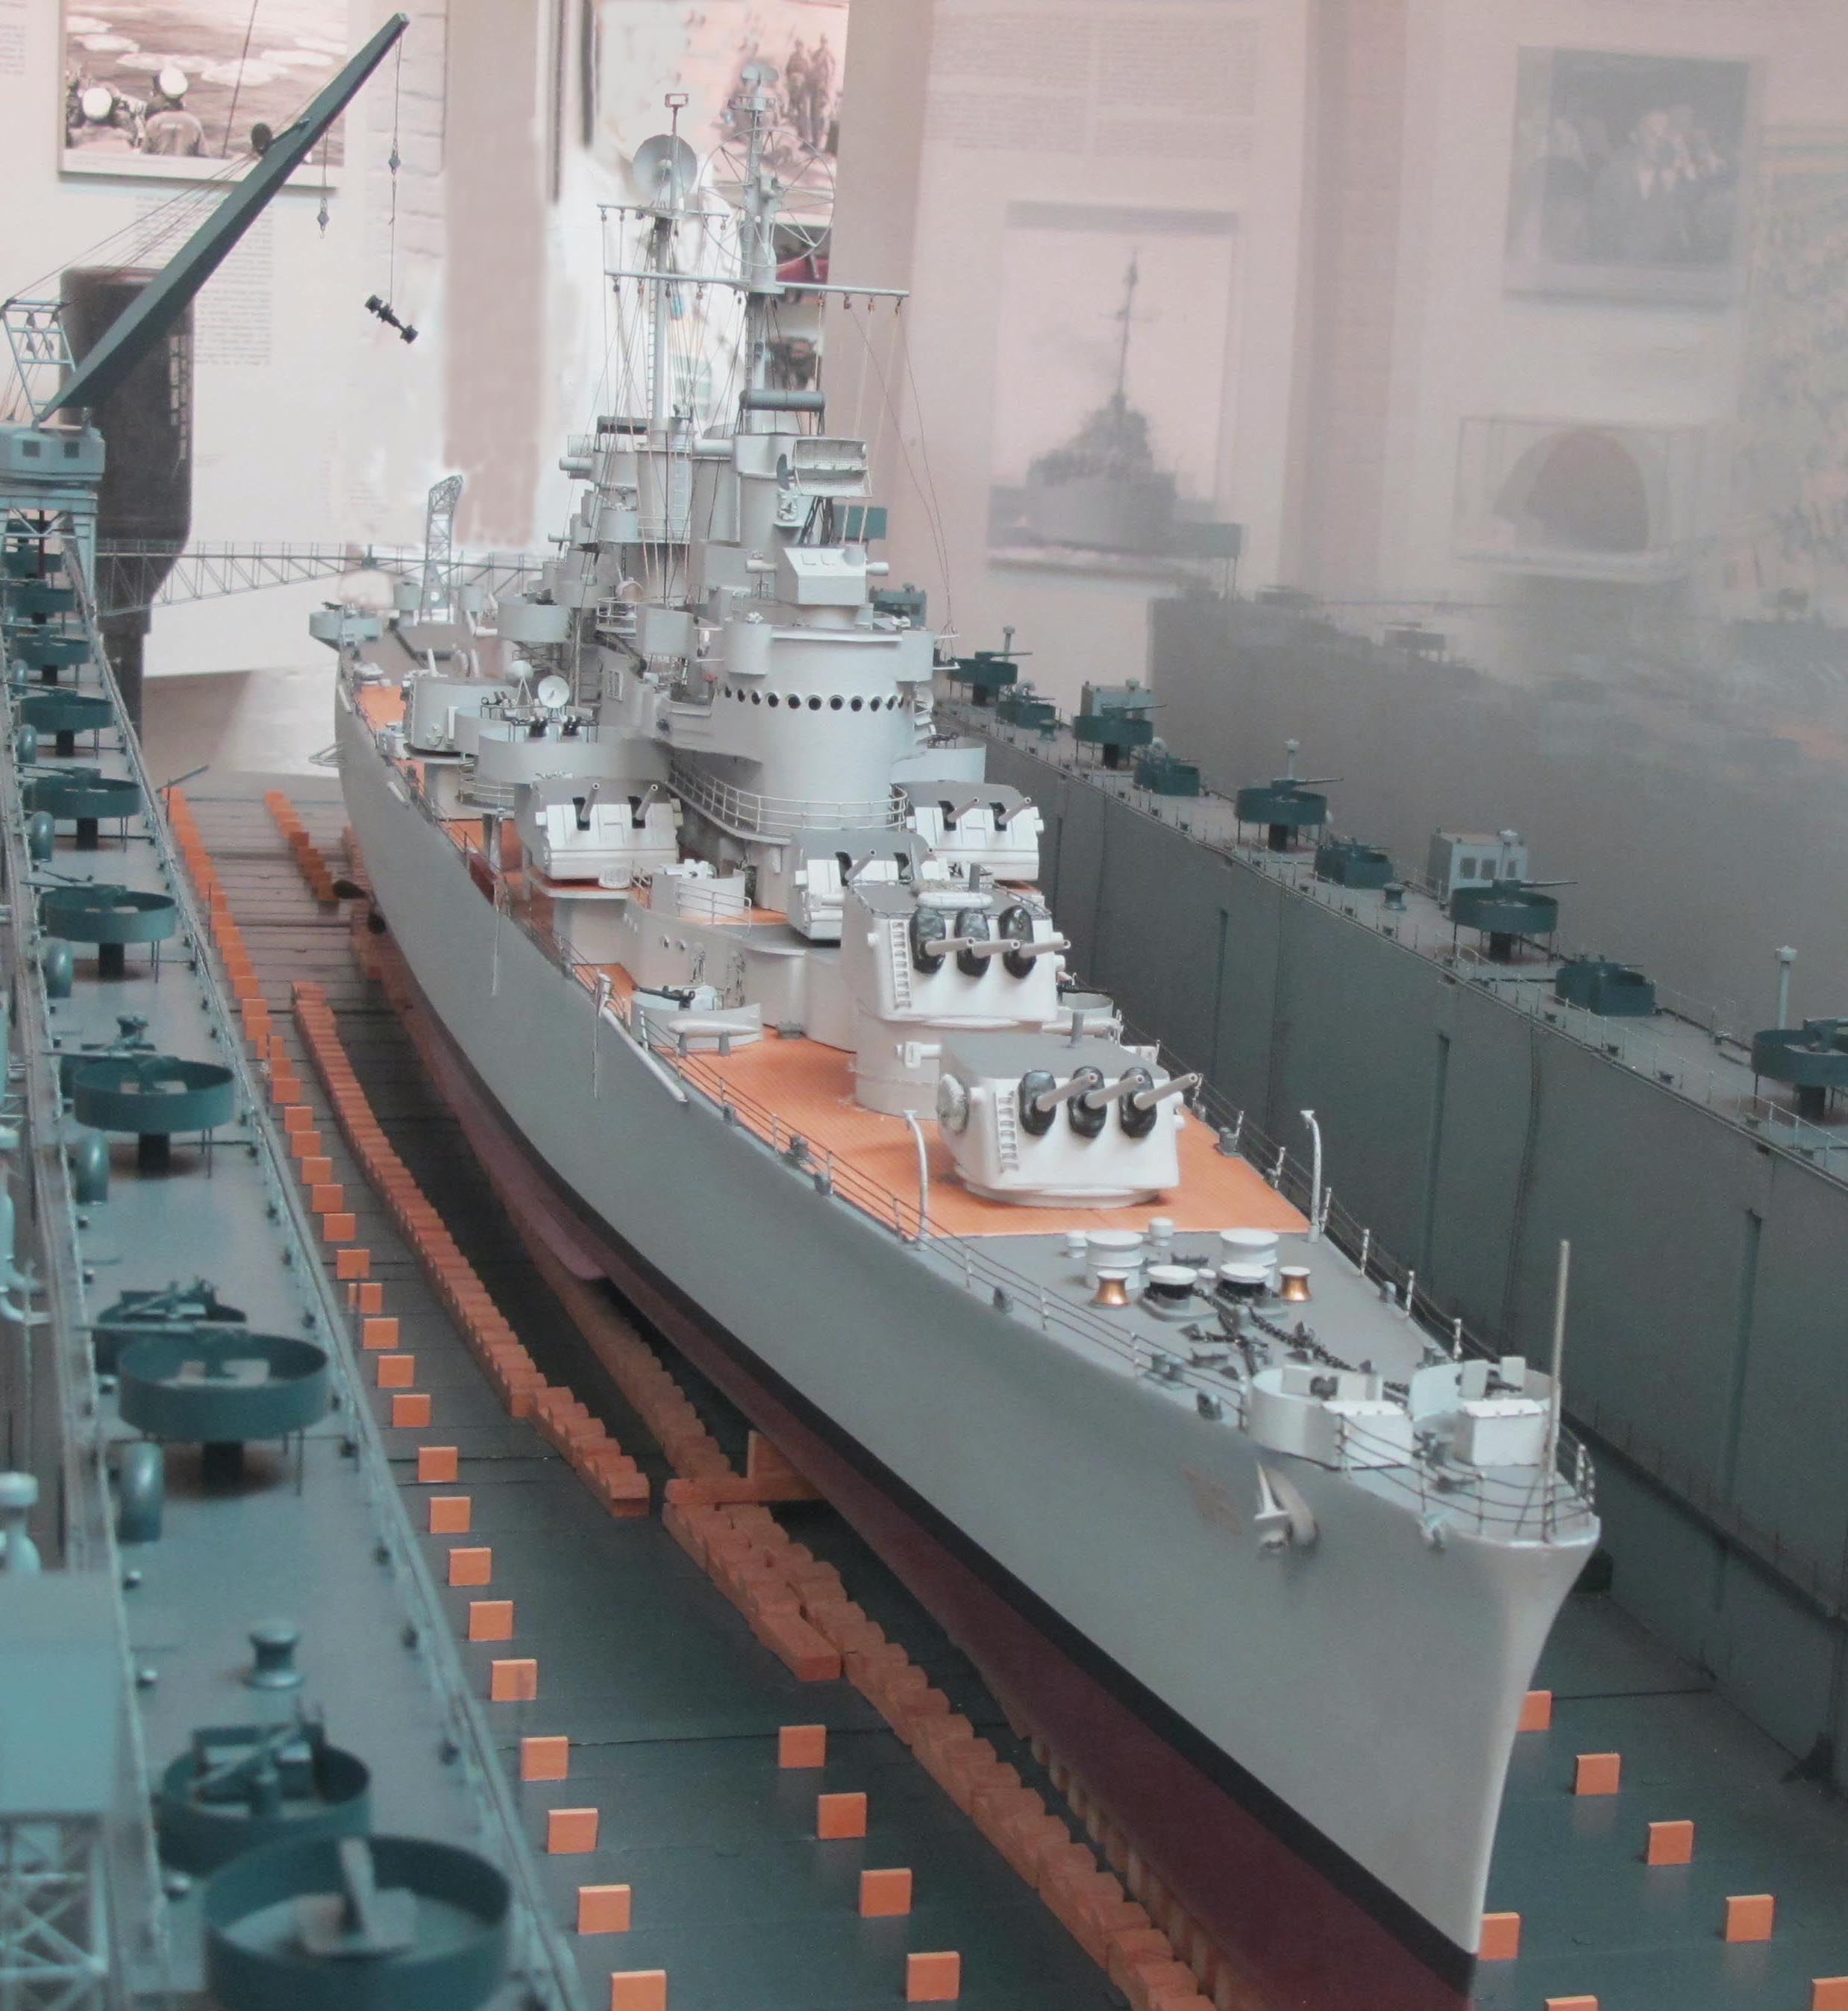 Columbia model in floating drydock